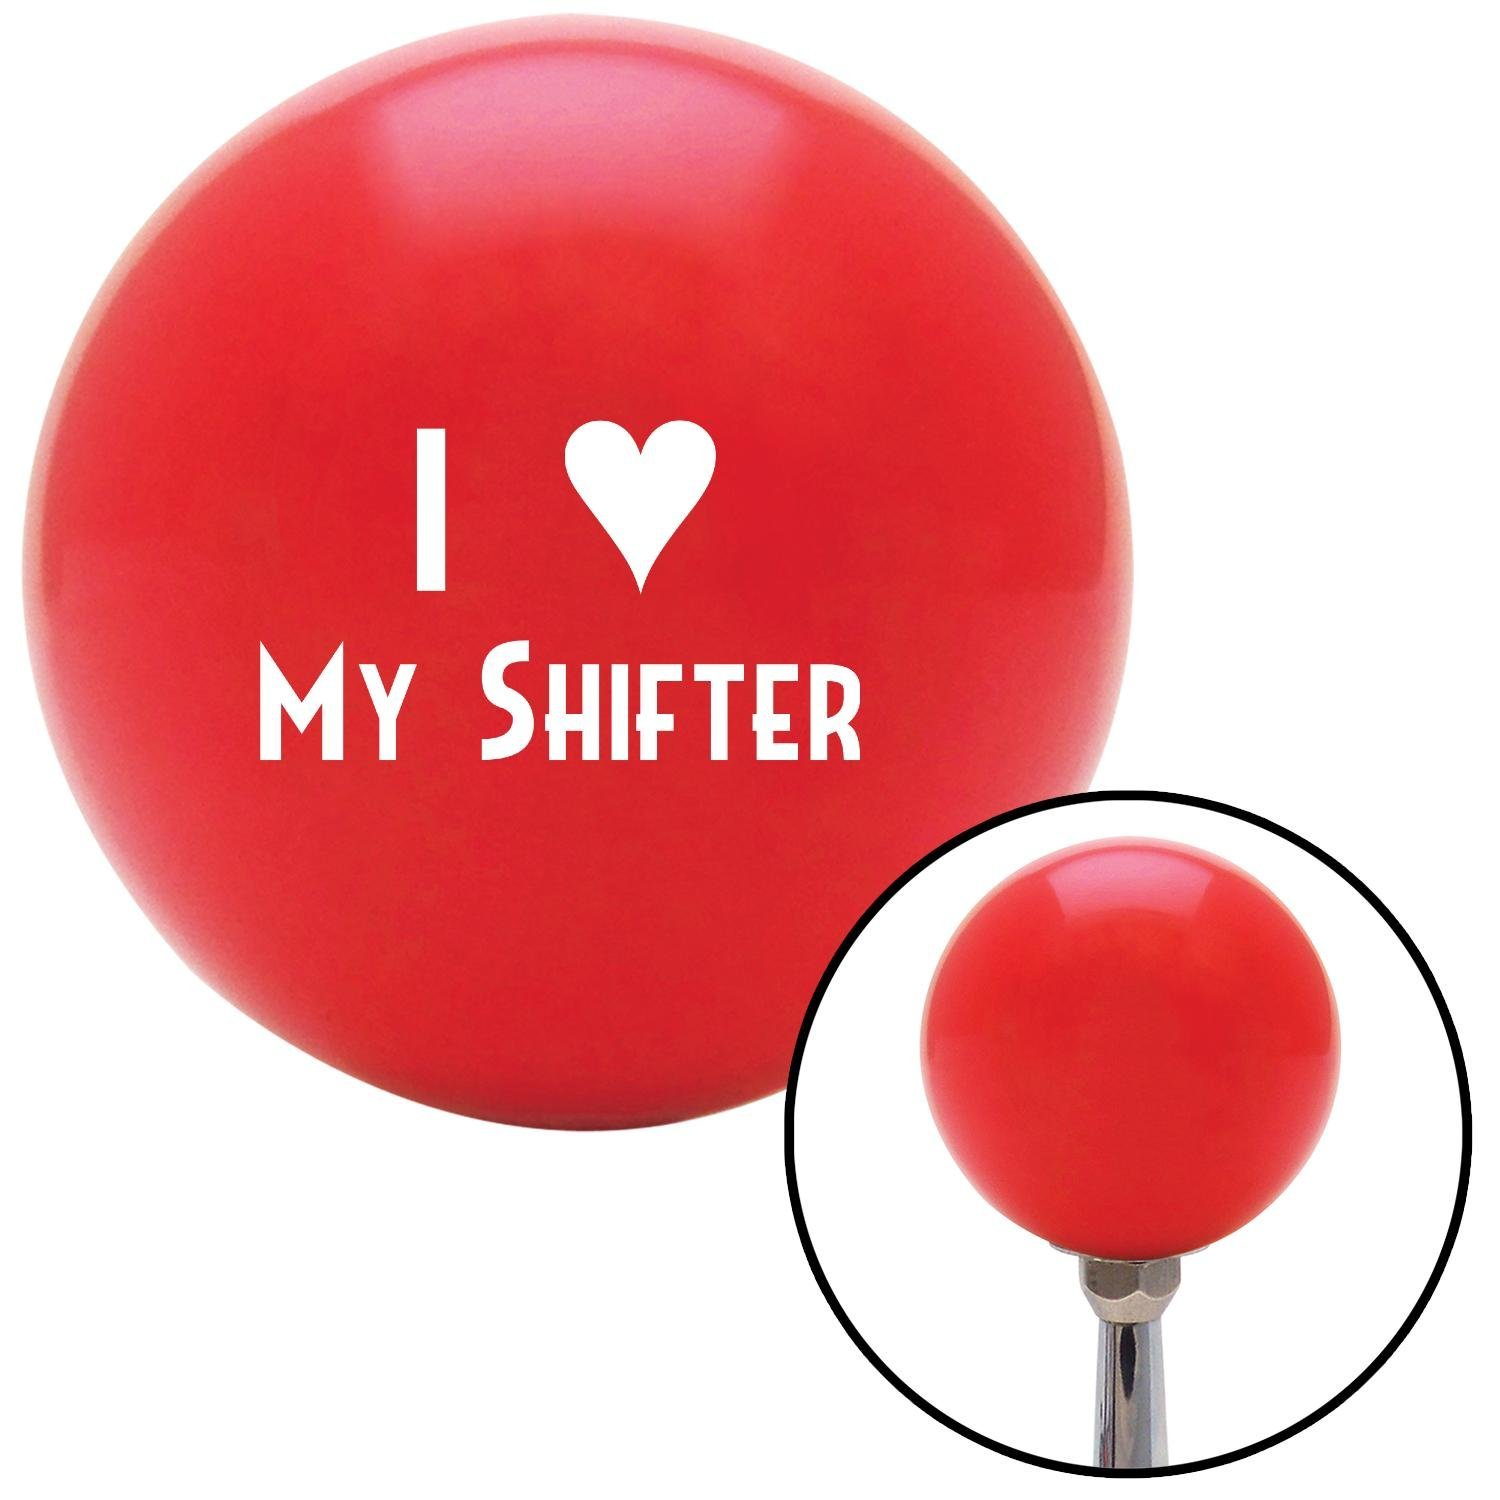 American Shifter 96844 Red Shift Knob with M16 x 1.5 Insert White I 3 My Shifter